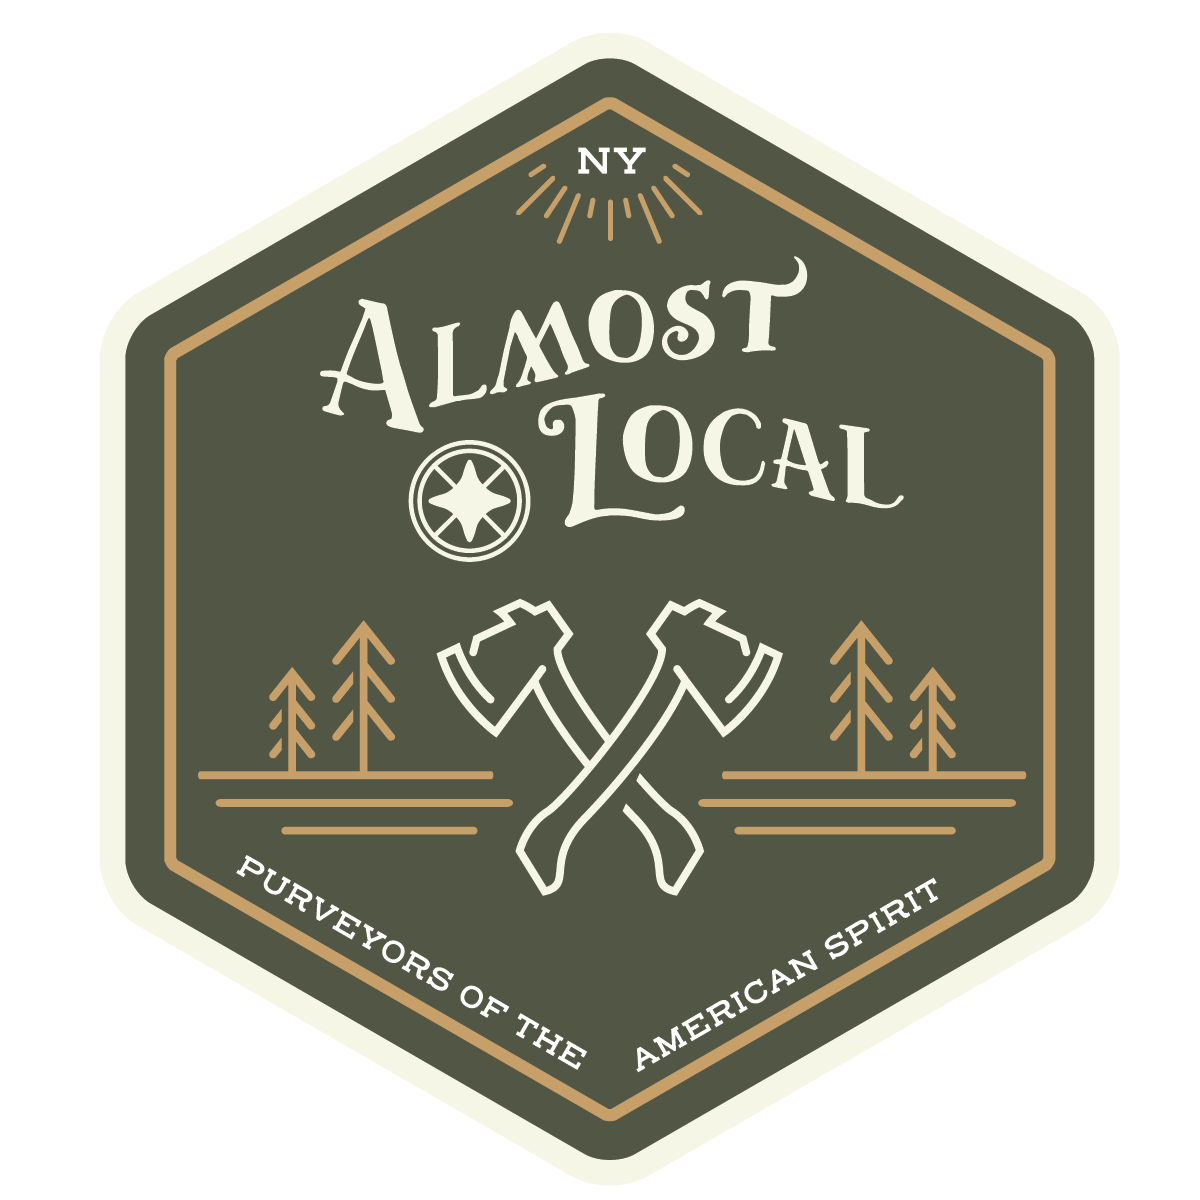 Almost Local